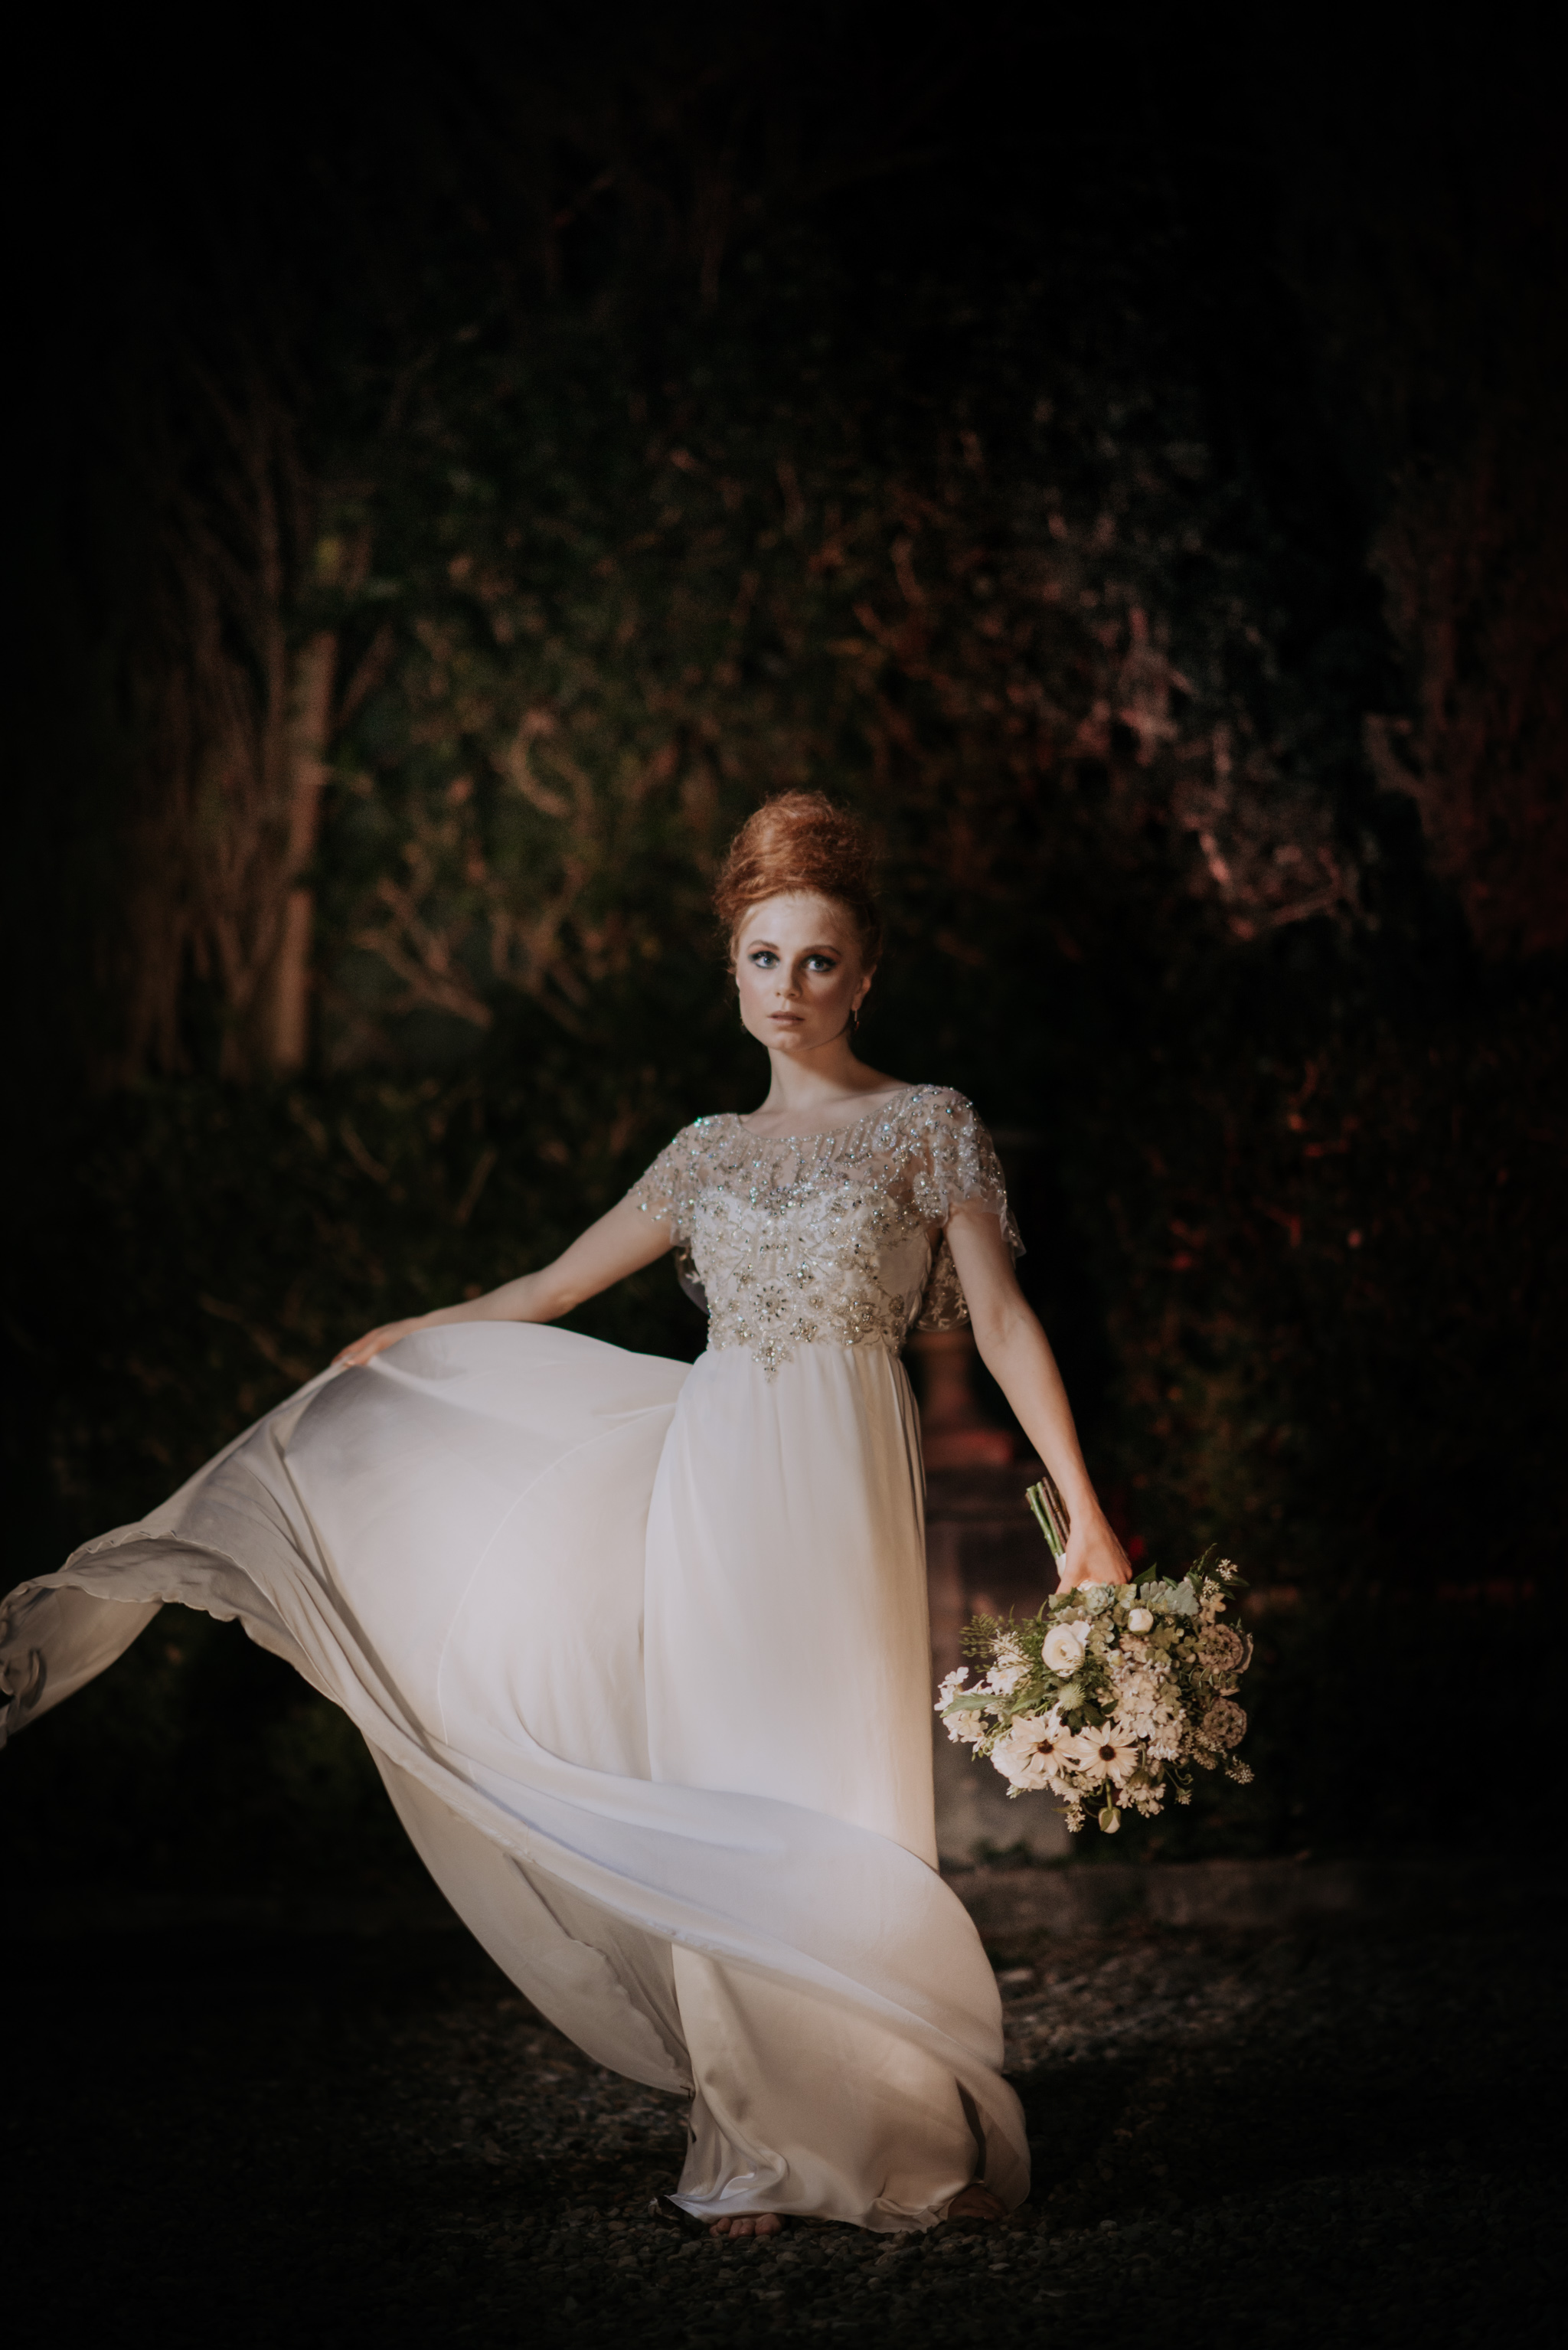 LOVELENSCAPES PHOTOGRAPHY X ANNA CAMPBELL BRIDAL X LEMAE MAKEUP ARTISTRY X BLOOMING LOVELY BOUQUETS X ERIN LIGHTFOOT X LITTLE WHITE COUTURE • 41.jpg